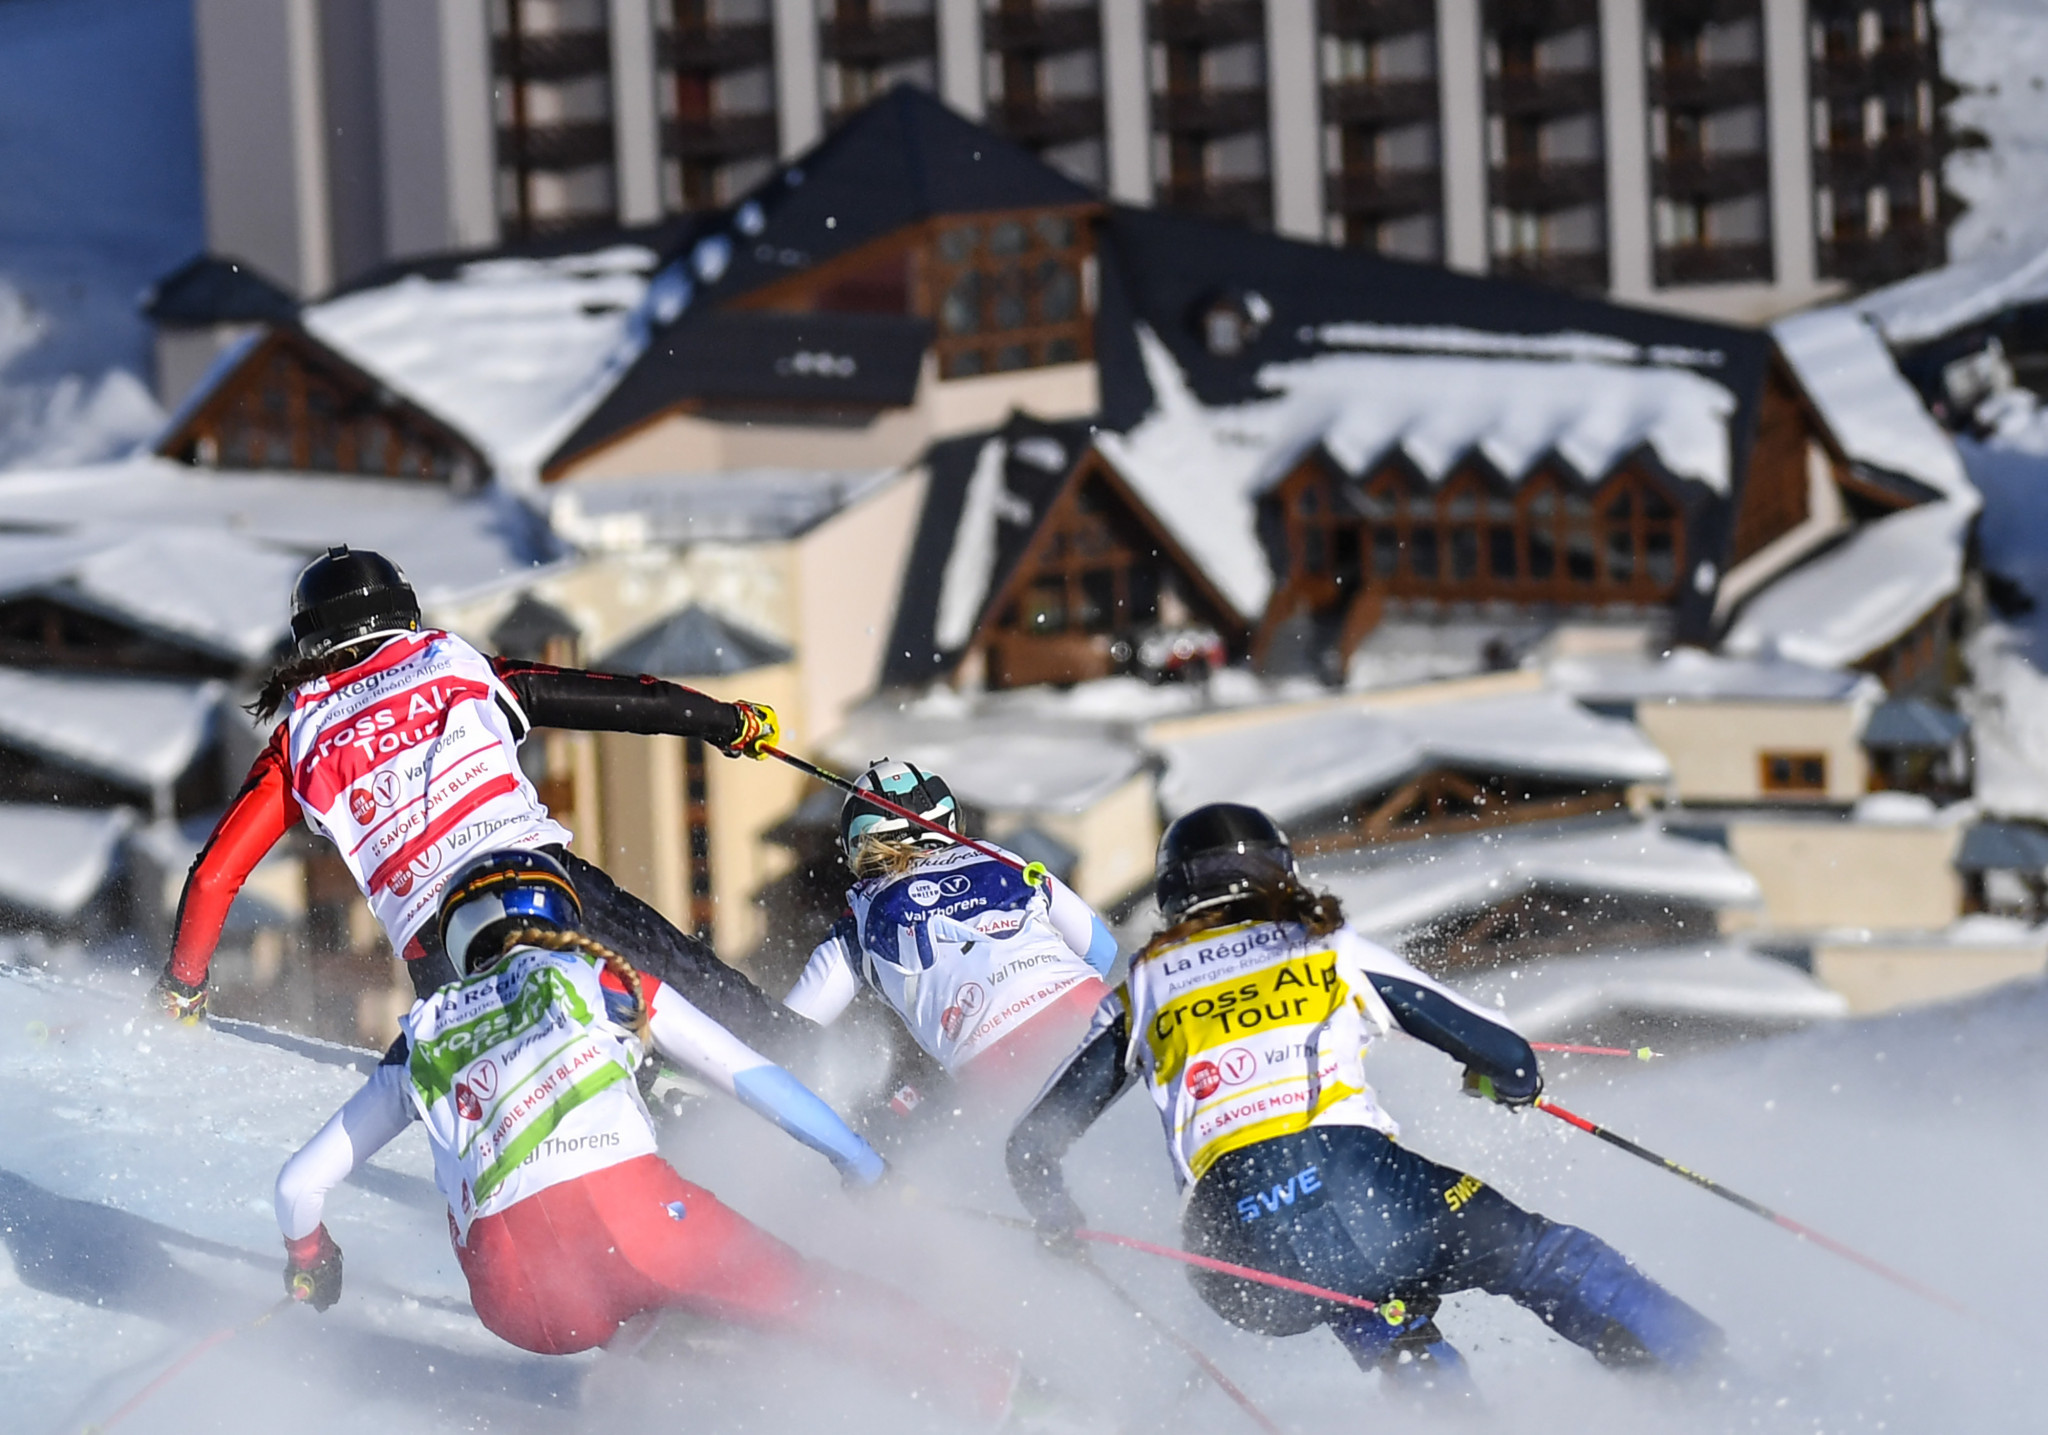 Val Thorens set to stage Ski Cross World Cup doubleheader